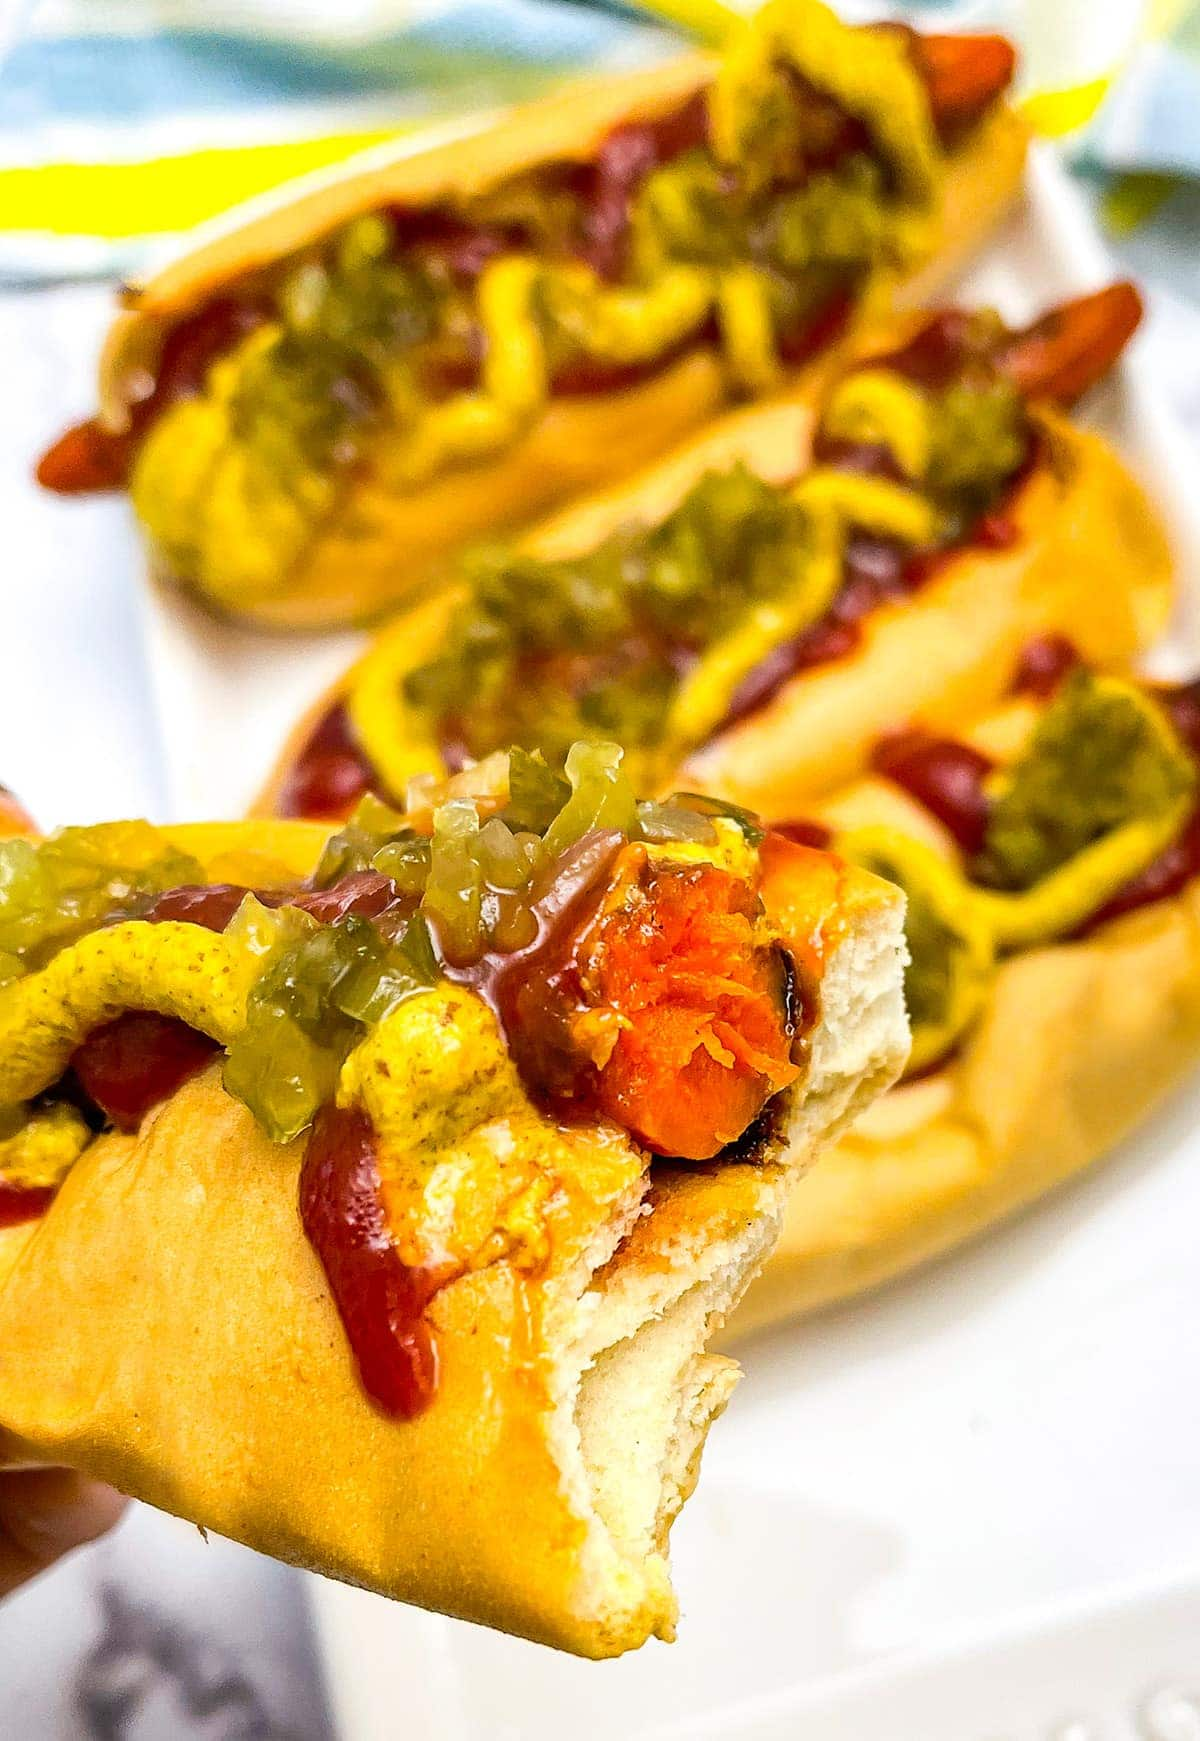 Carrot hotdogs with a bite taken